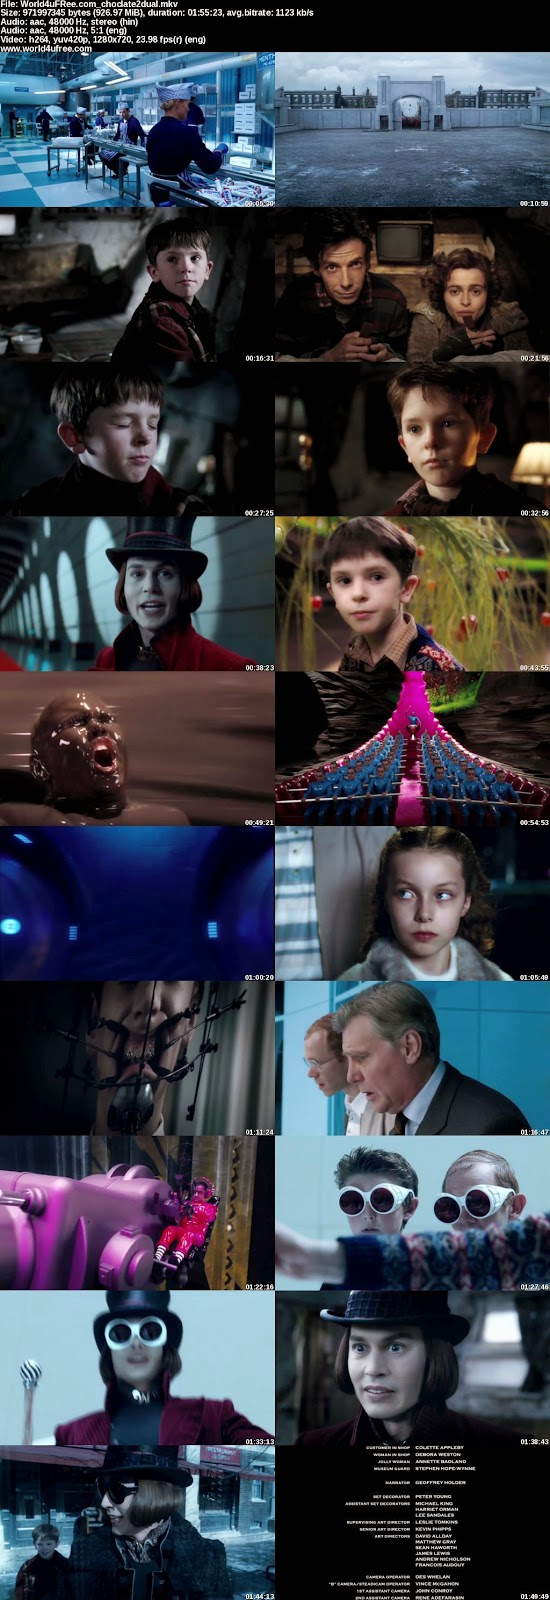 Download Full Movie Of Charlie And The Chocolate Factory